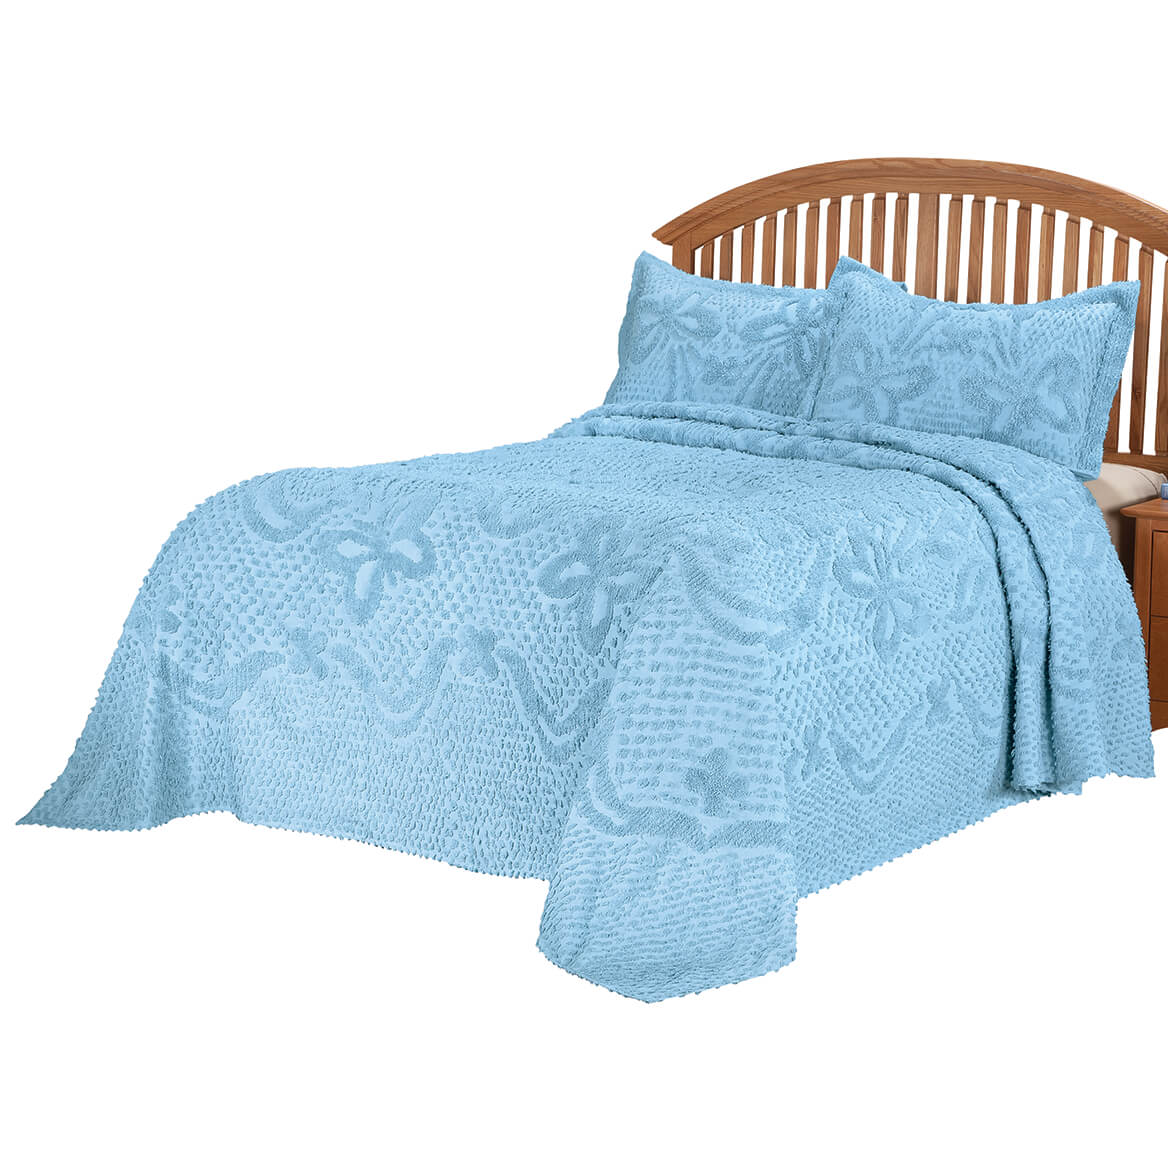 The Caroline Chenille Bedding by OakRidge™